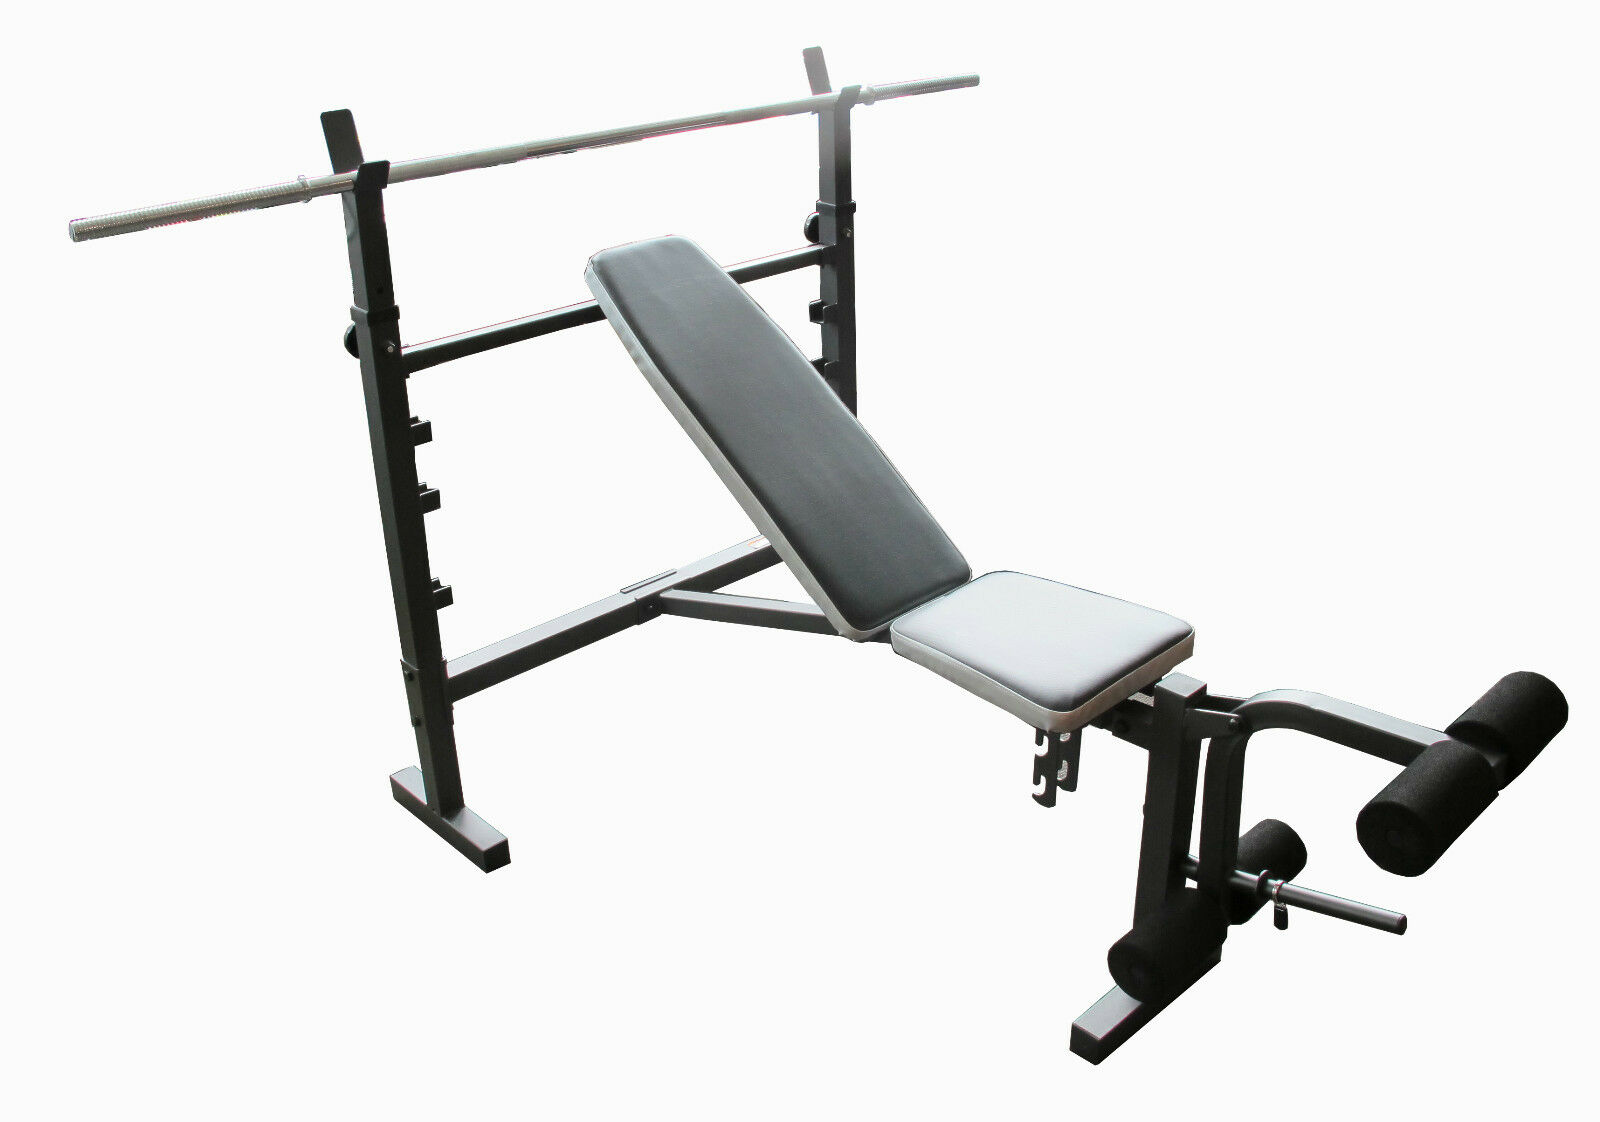 Wide adjustable flat incline decline bench press home gym exercise accessories ebay - Incline and decline bench press ...